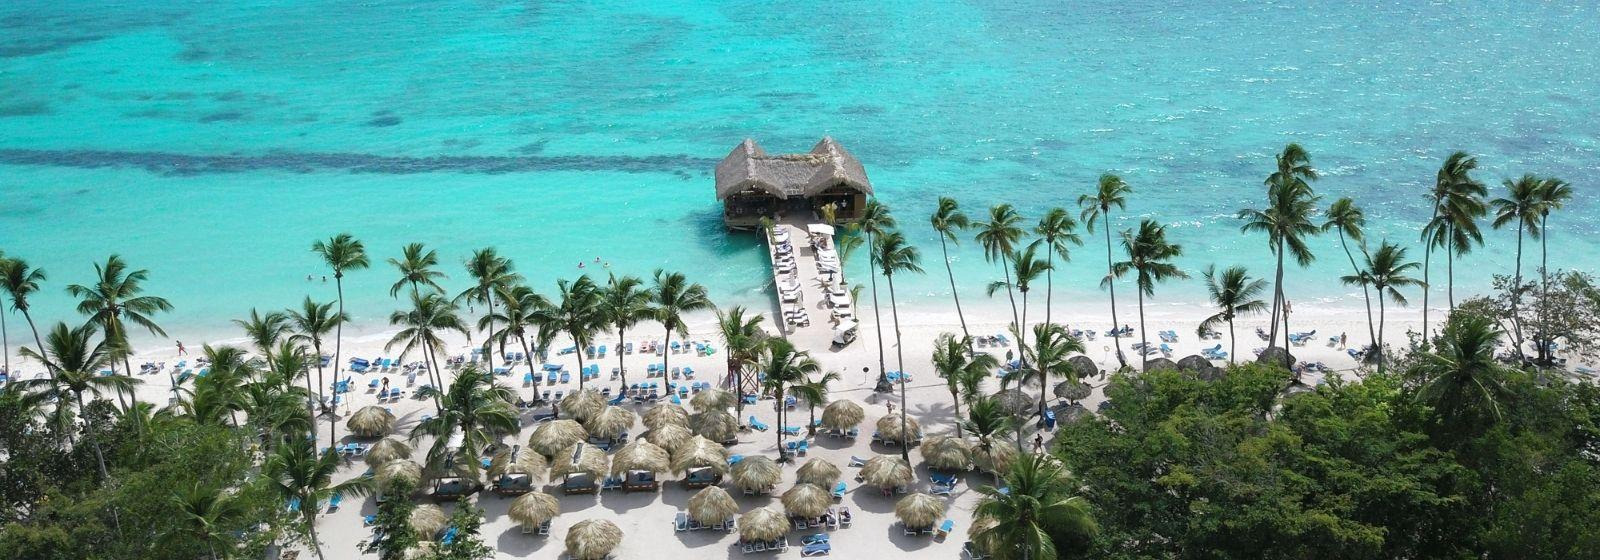 Things to do in La Romana